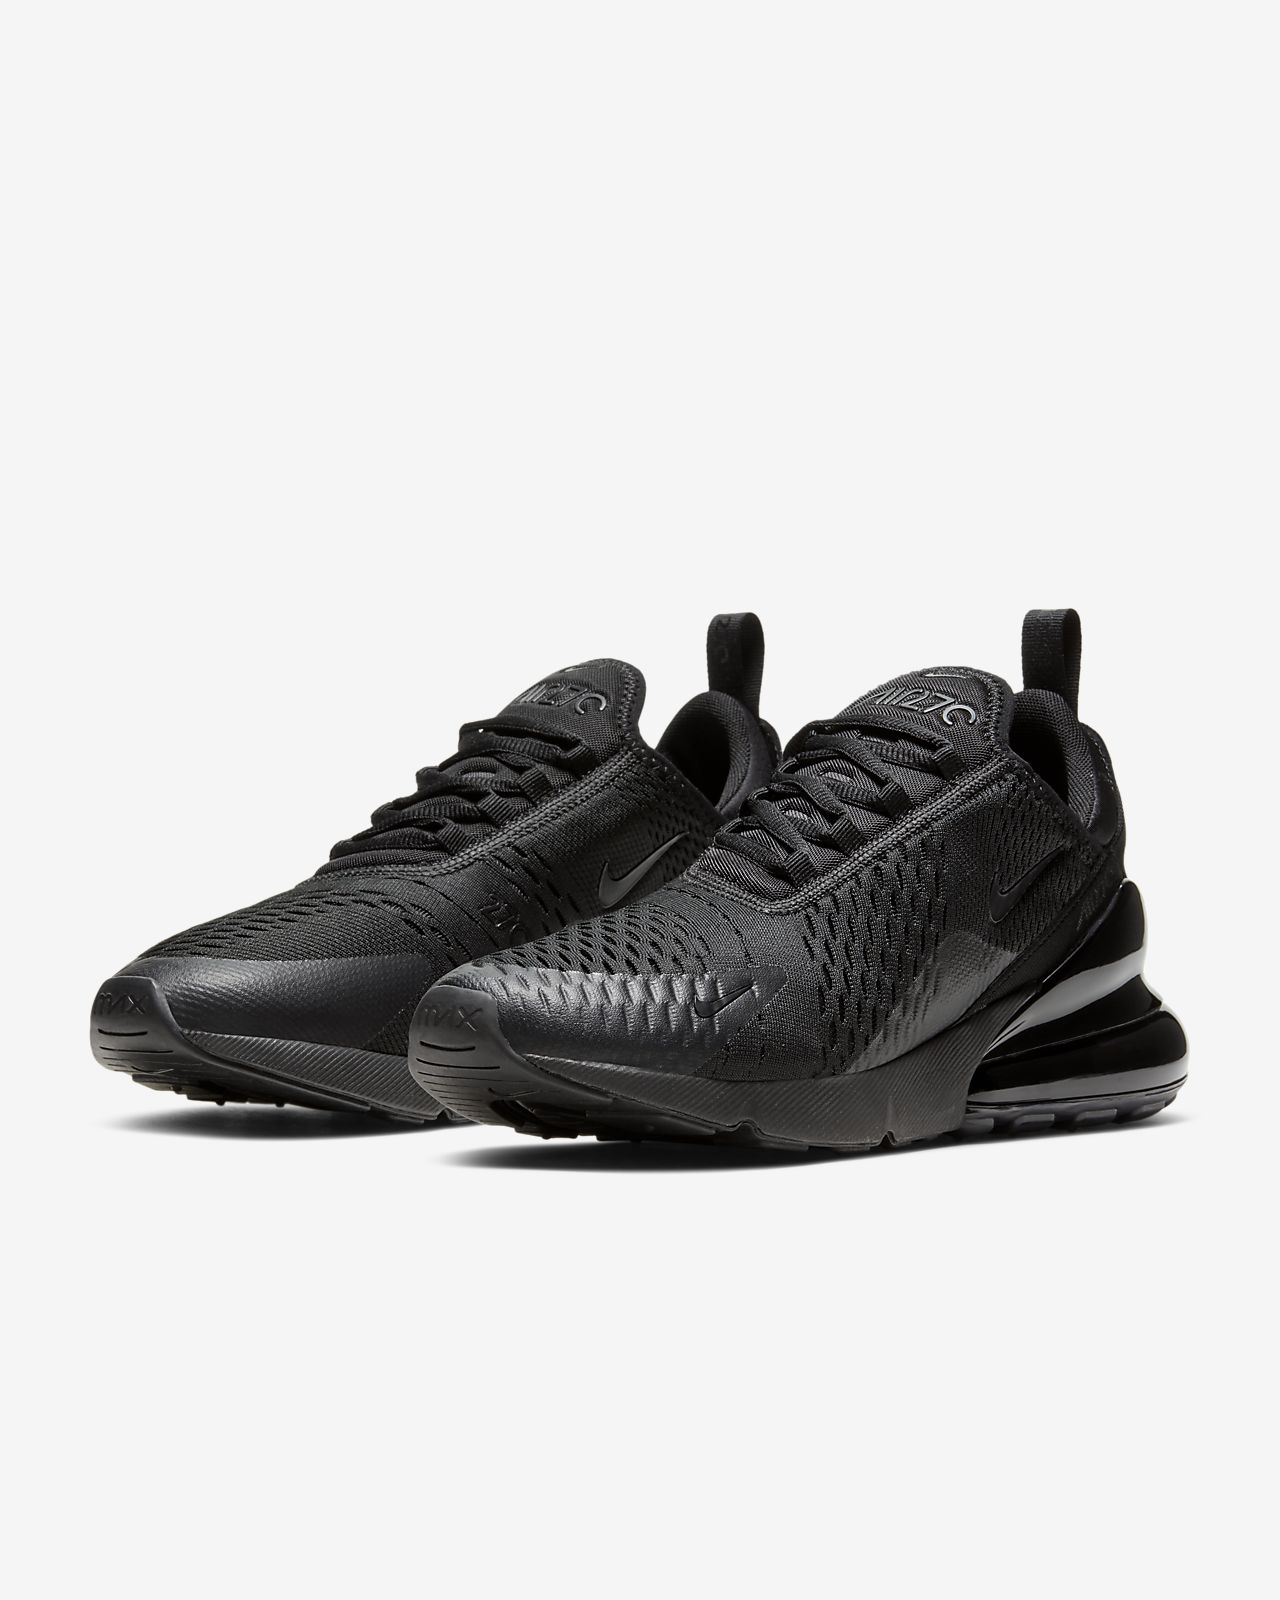 8bd04729b90b Nike Air Max 270 Men s Shoe. Nike.com AU